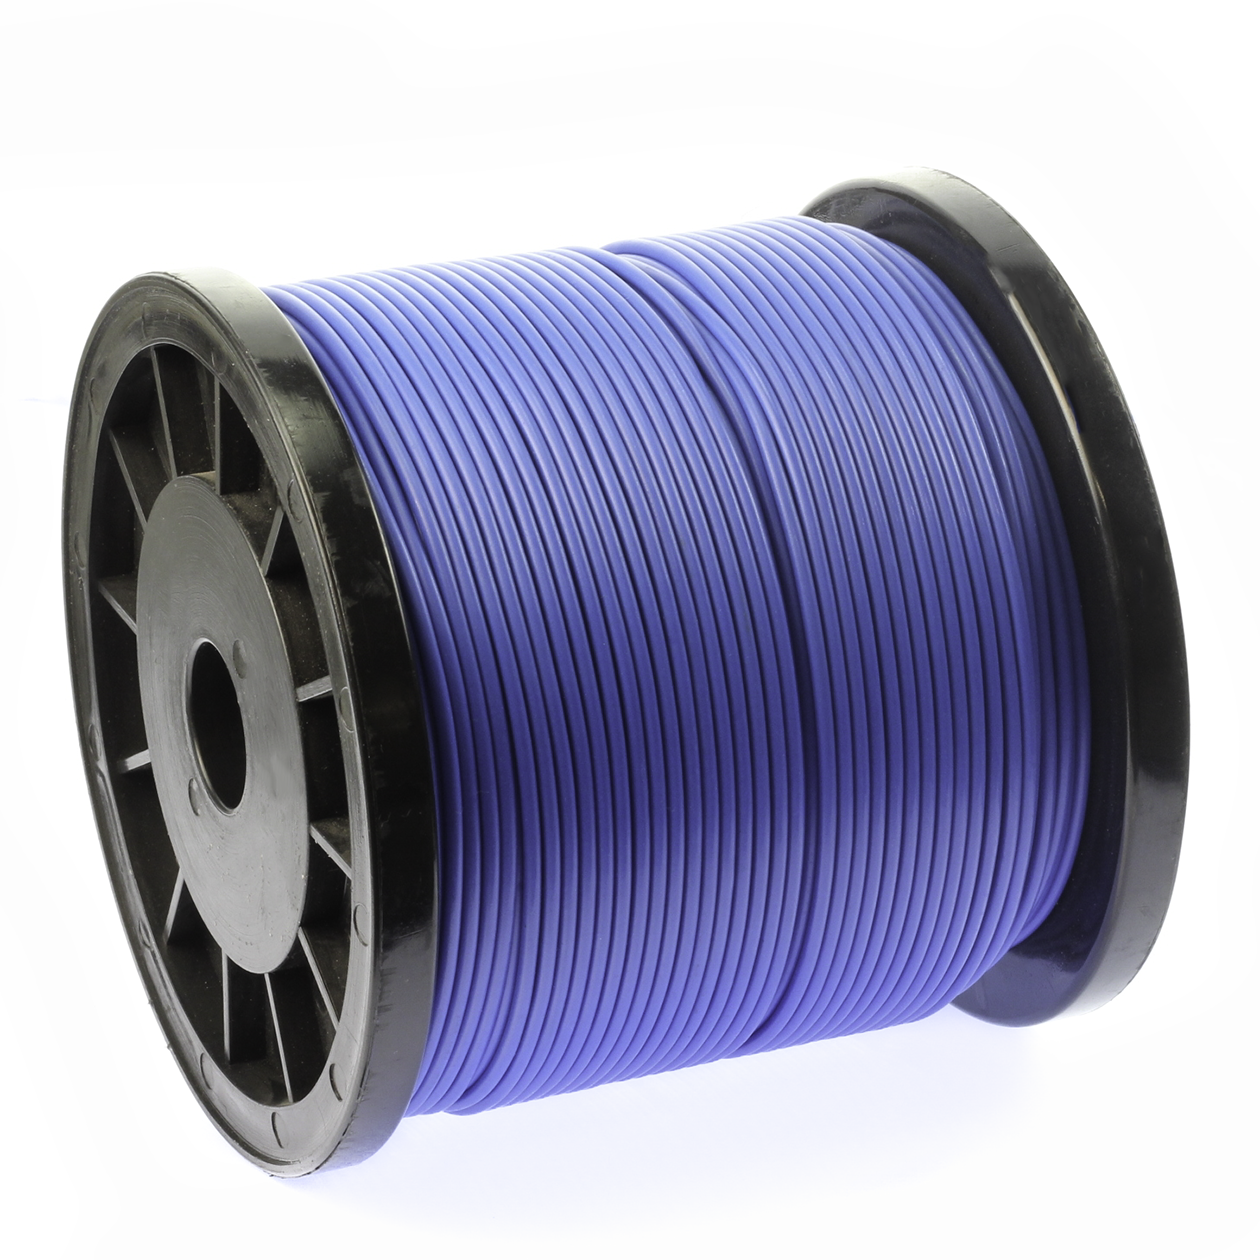 High Quality 18 Gauge 500 Ft Stranded Primary wire Hookup